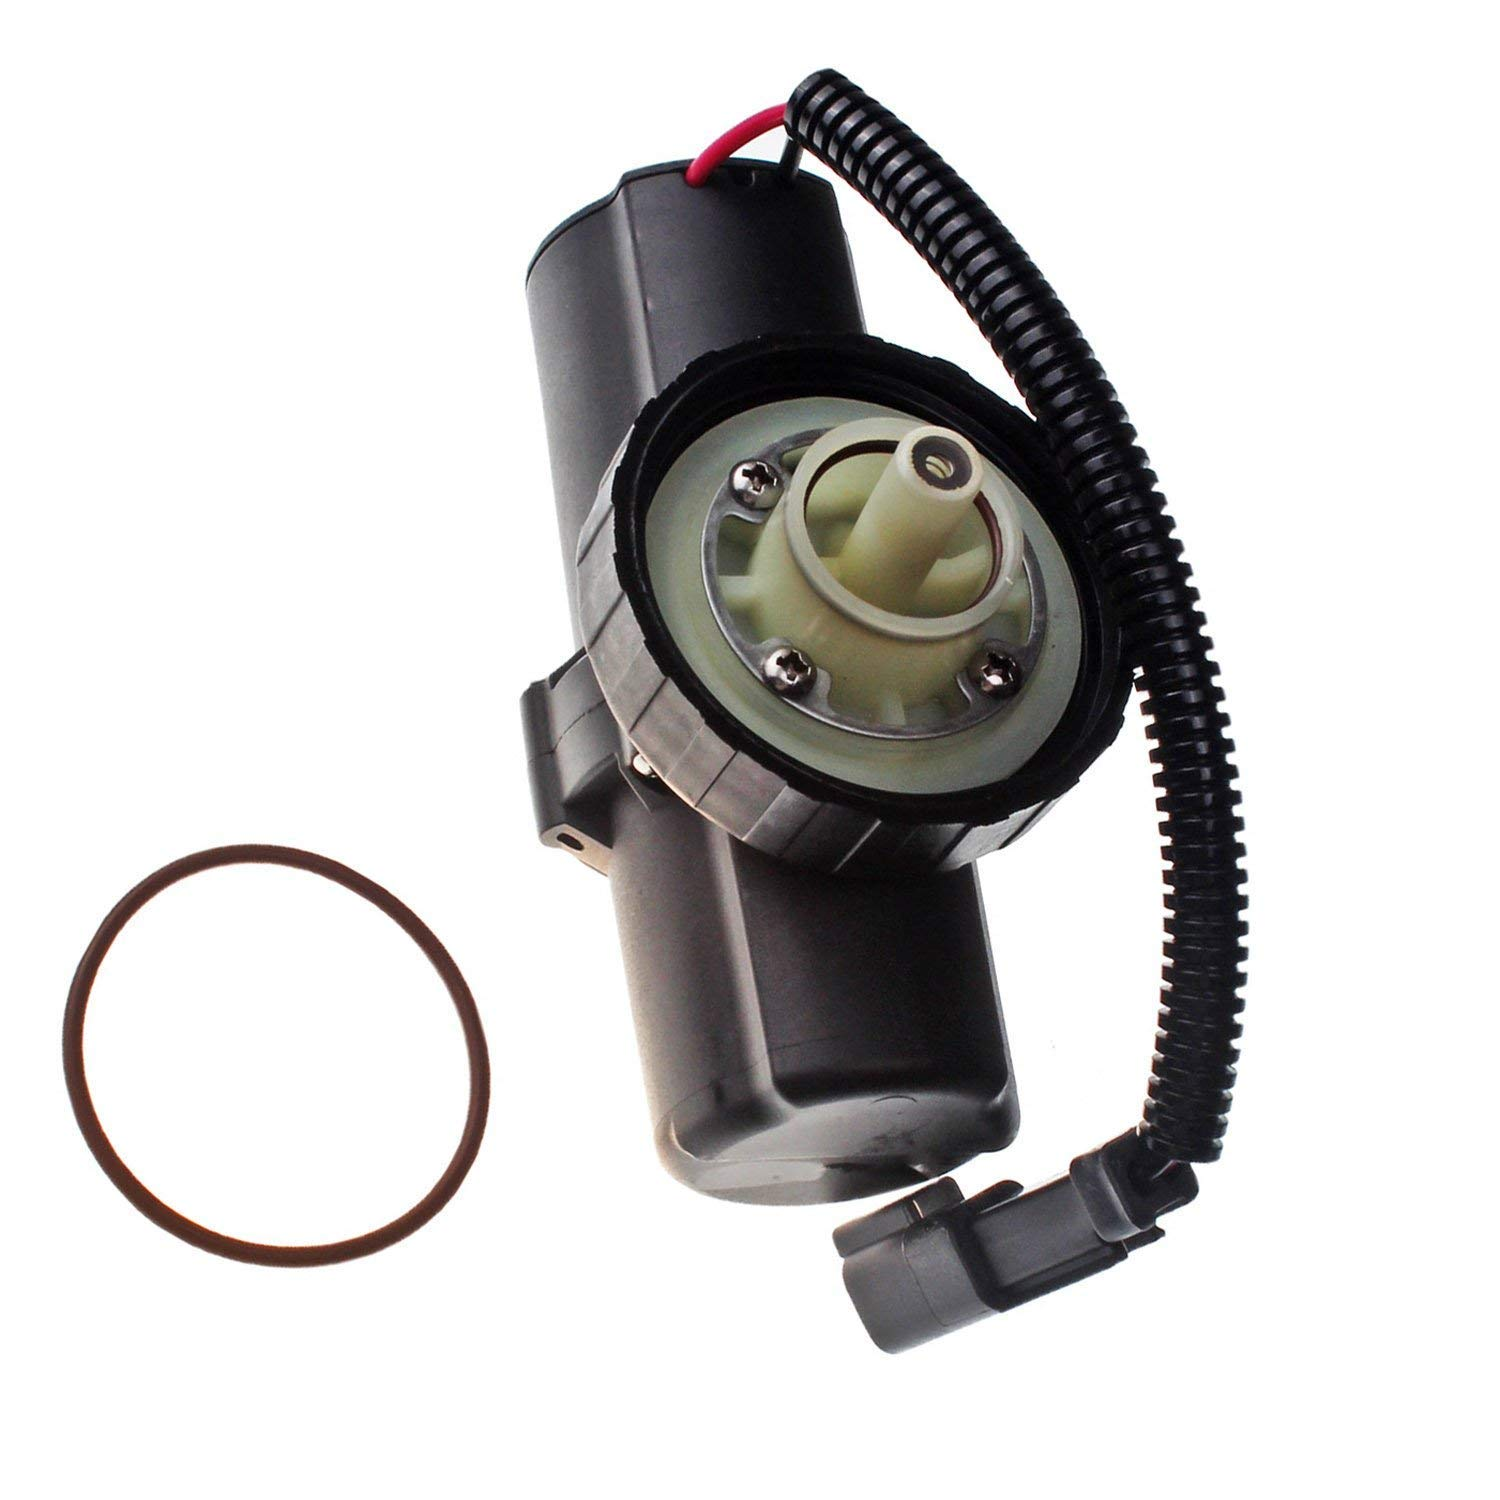 Mover Parts Fuel Extraction Pump 12V for Caterpillar Perkins MP10325 232-5877 228-9130